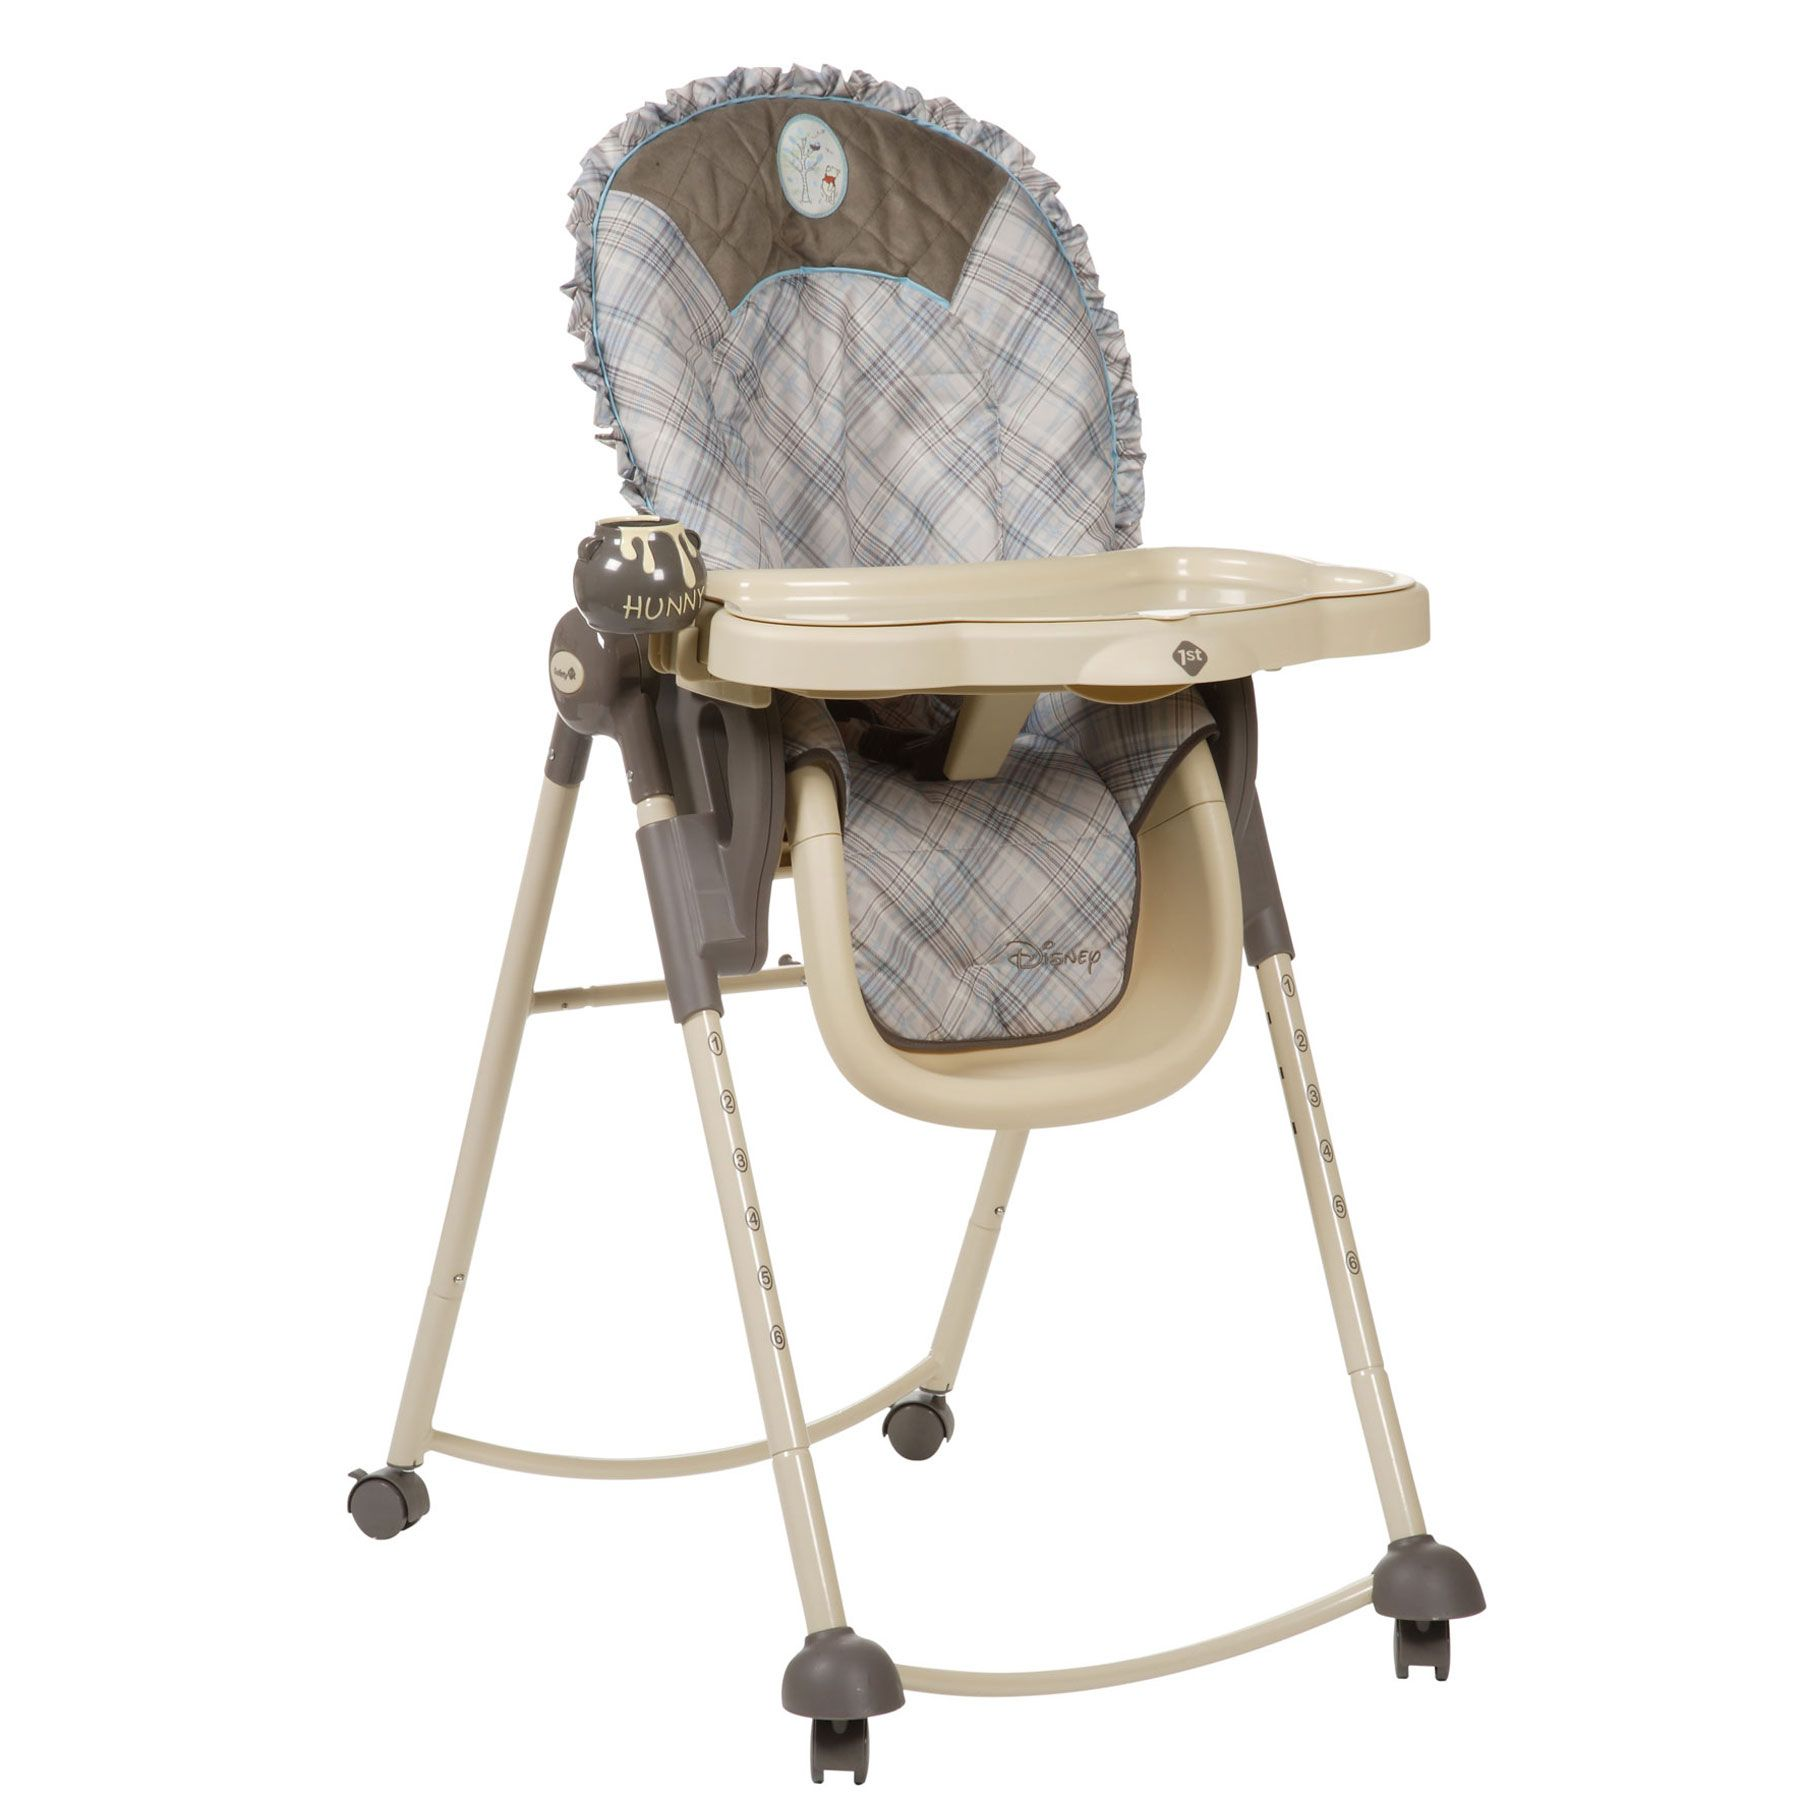 My Friend Pooh Serve 'N Store™ High Chair from Safety 1st